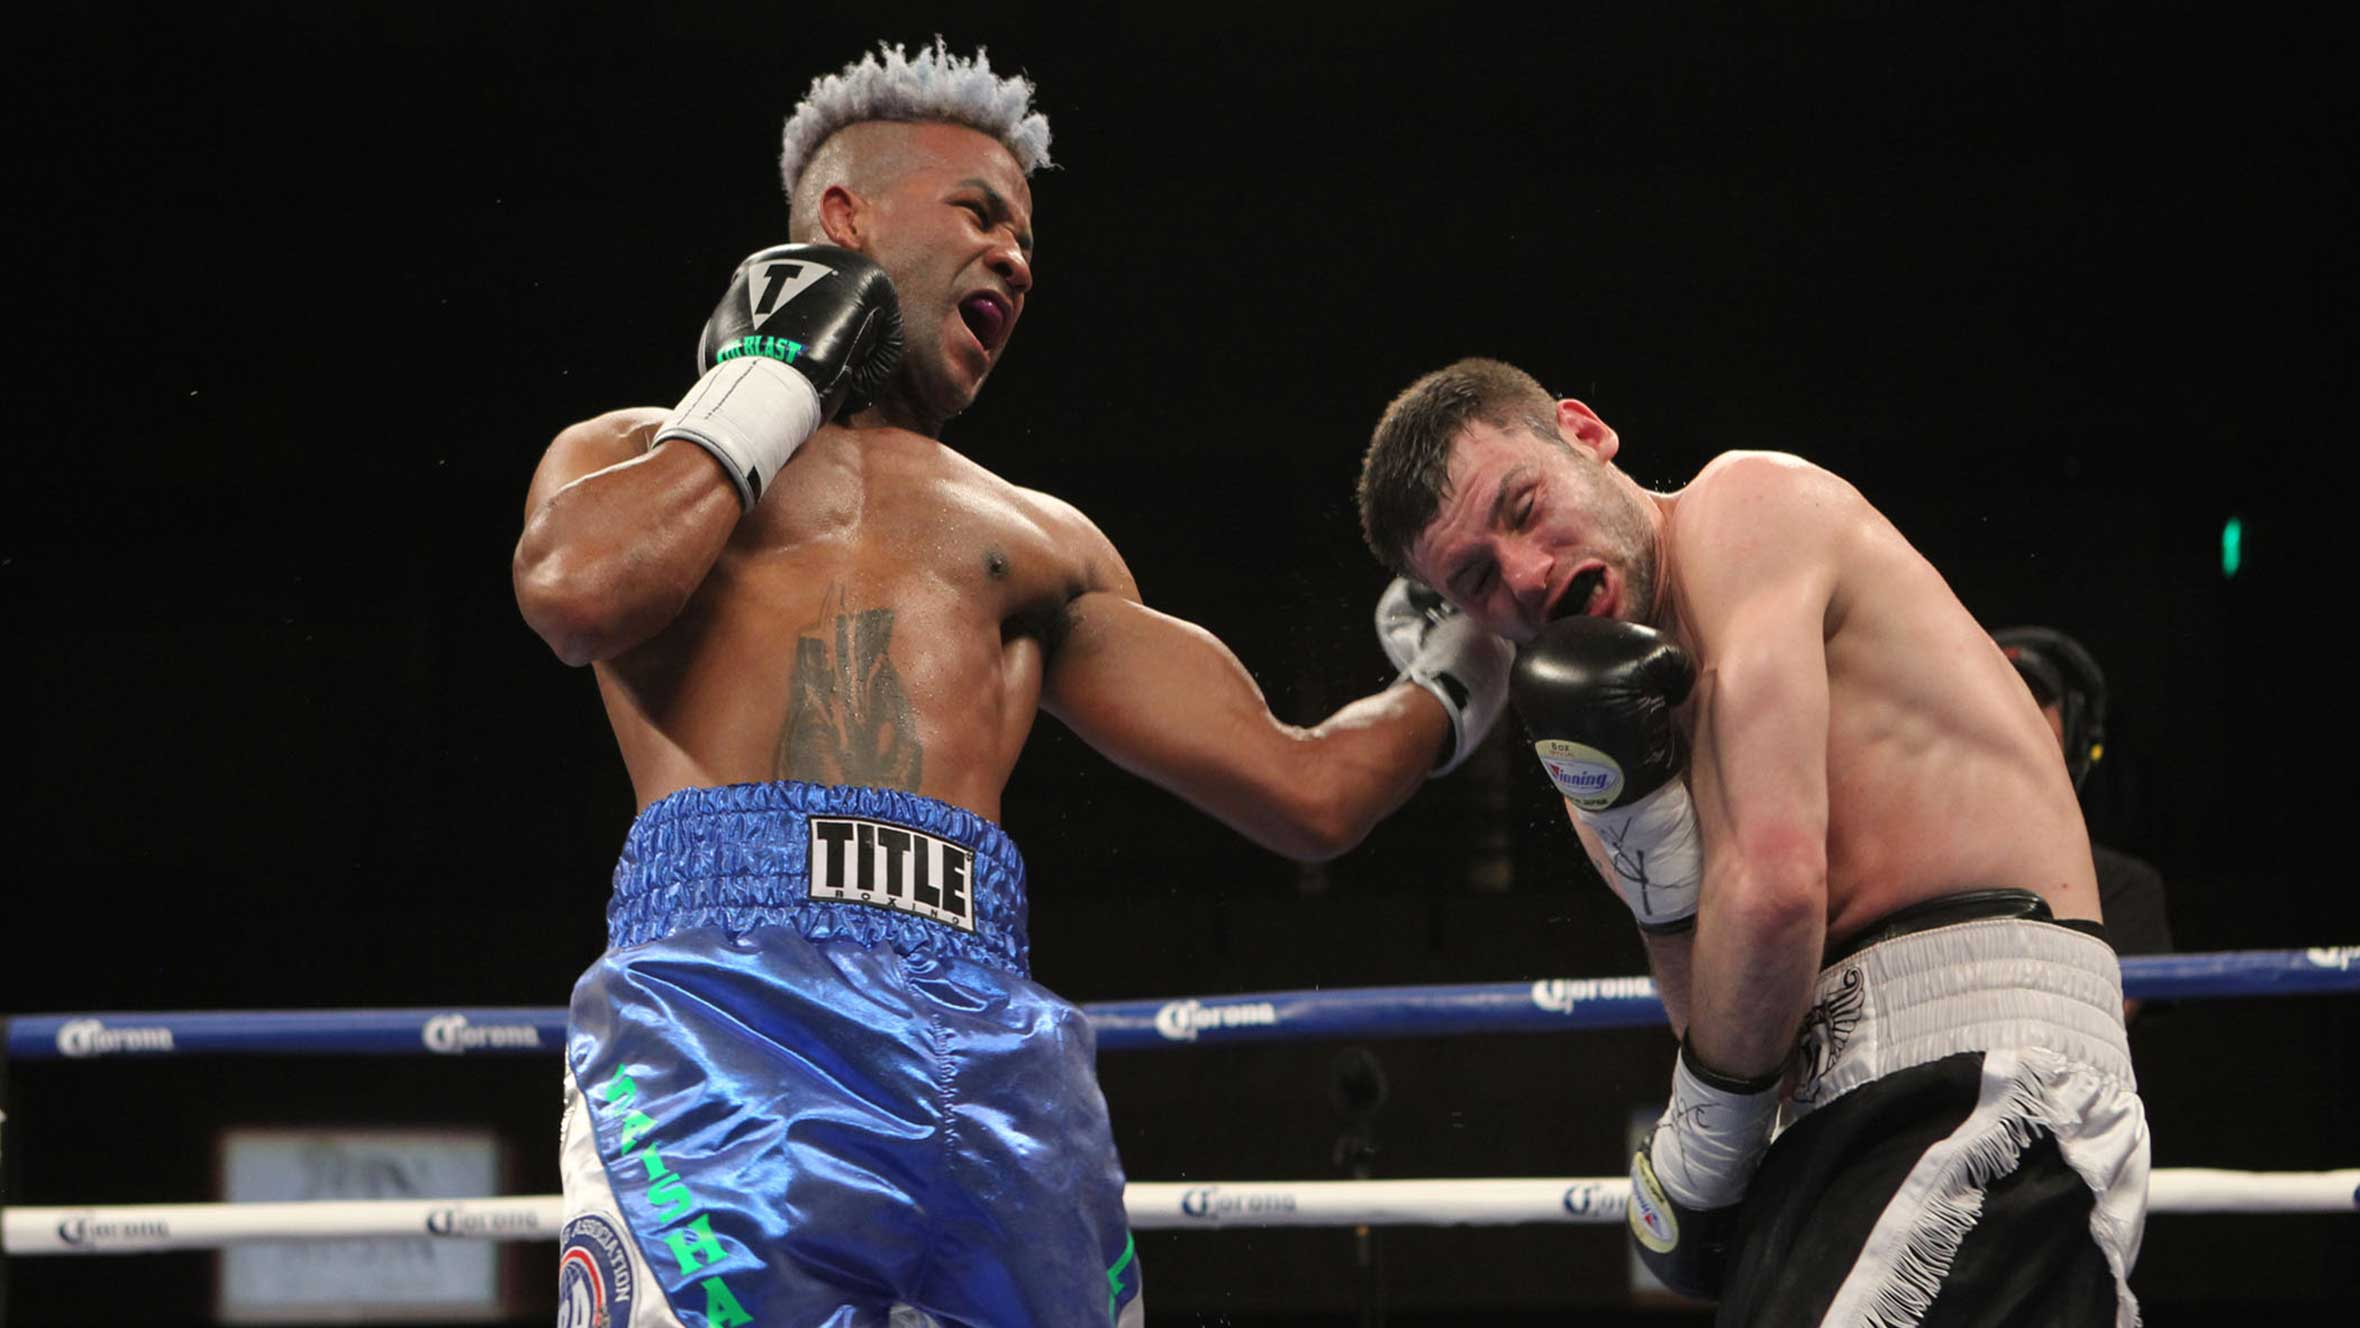 Alexis Texas Boxing 12 rounds with … rances barthelemy